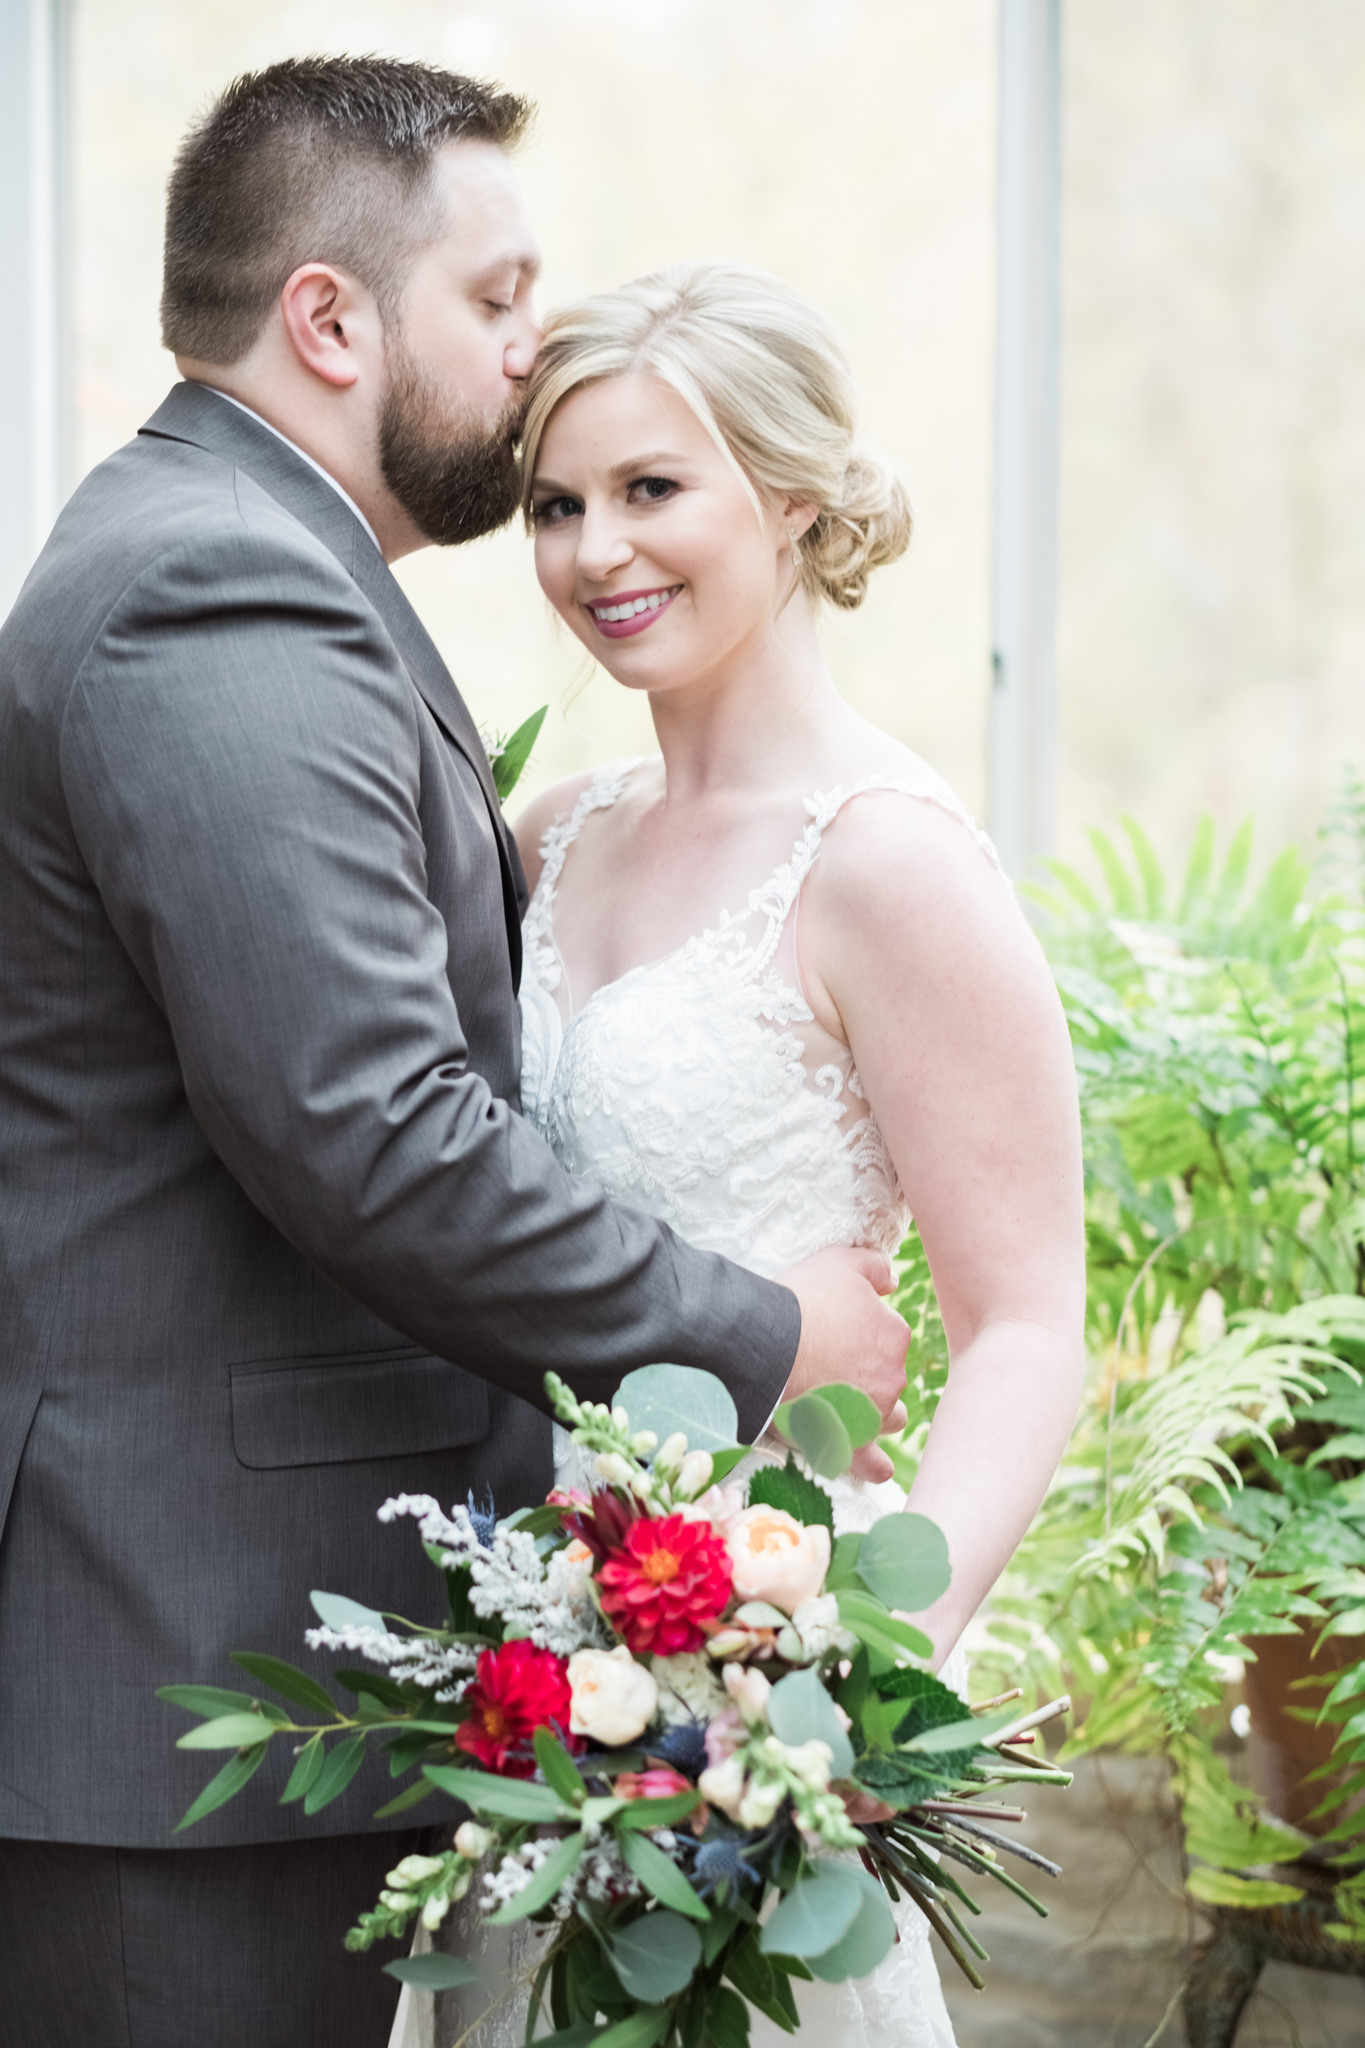 Lauren&Zack_Wedding_Blog_0039.jpg